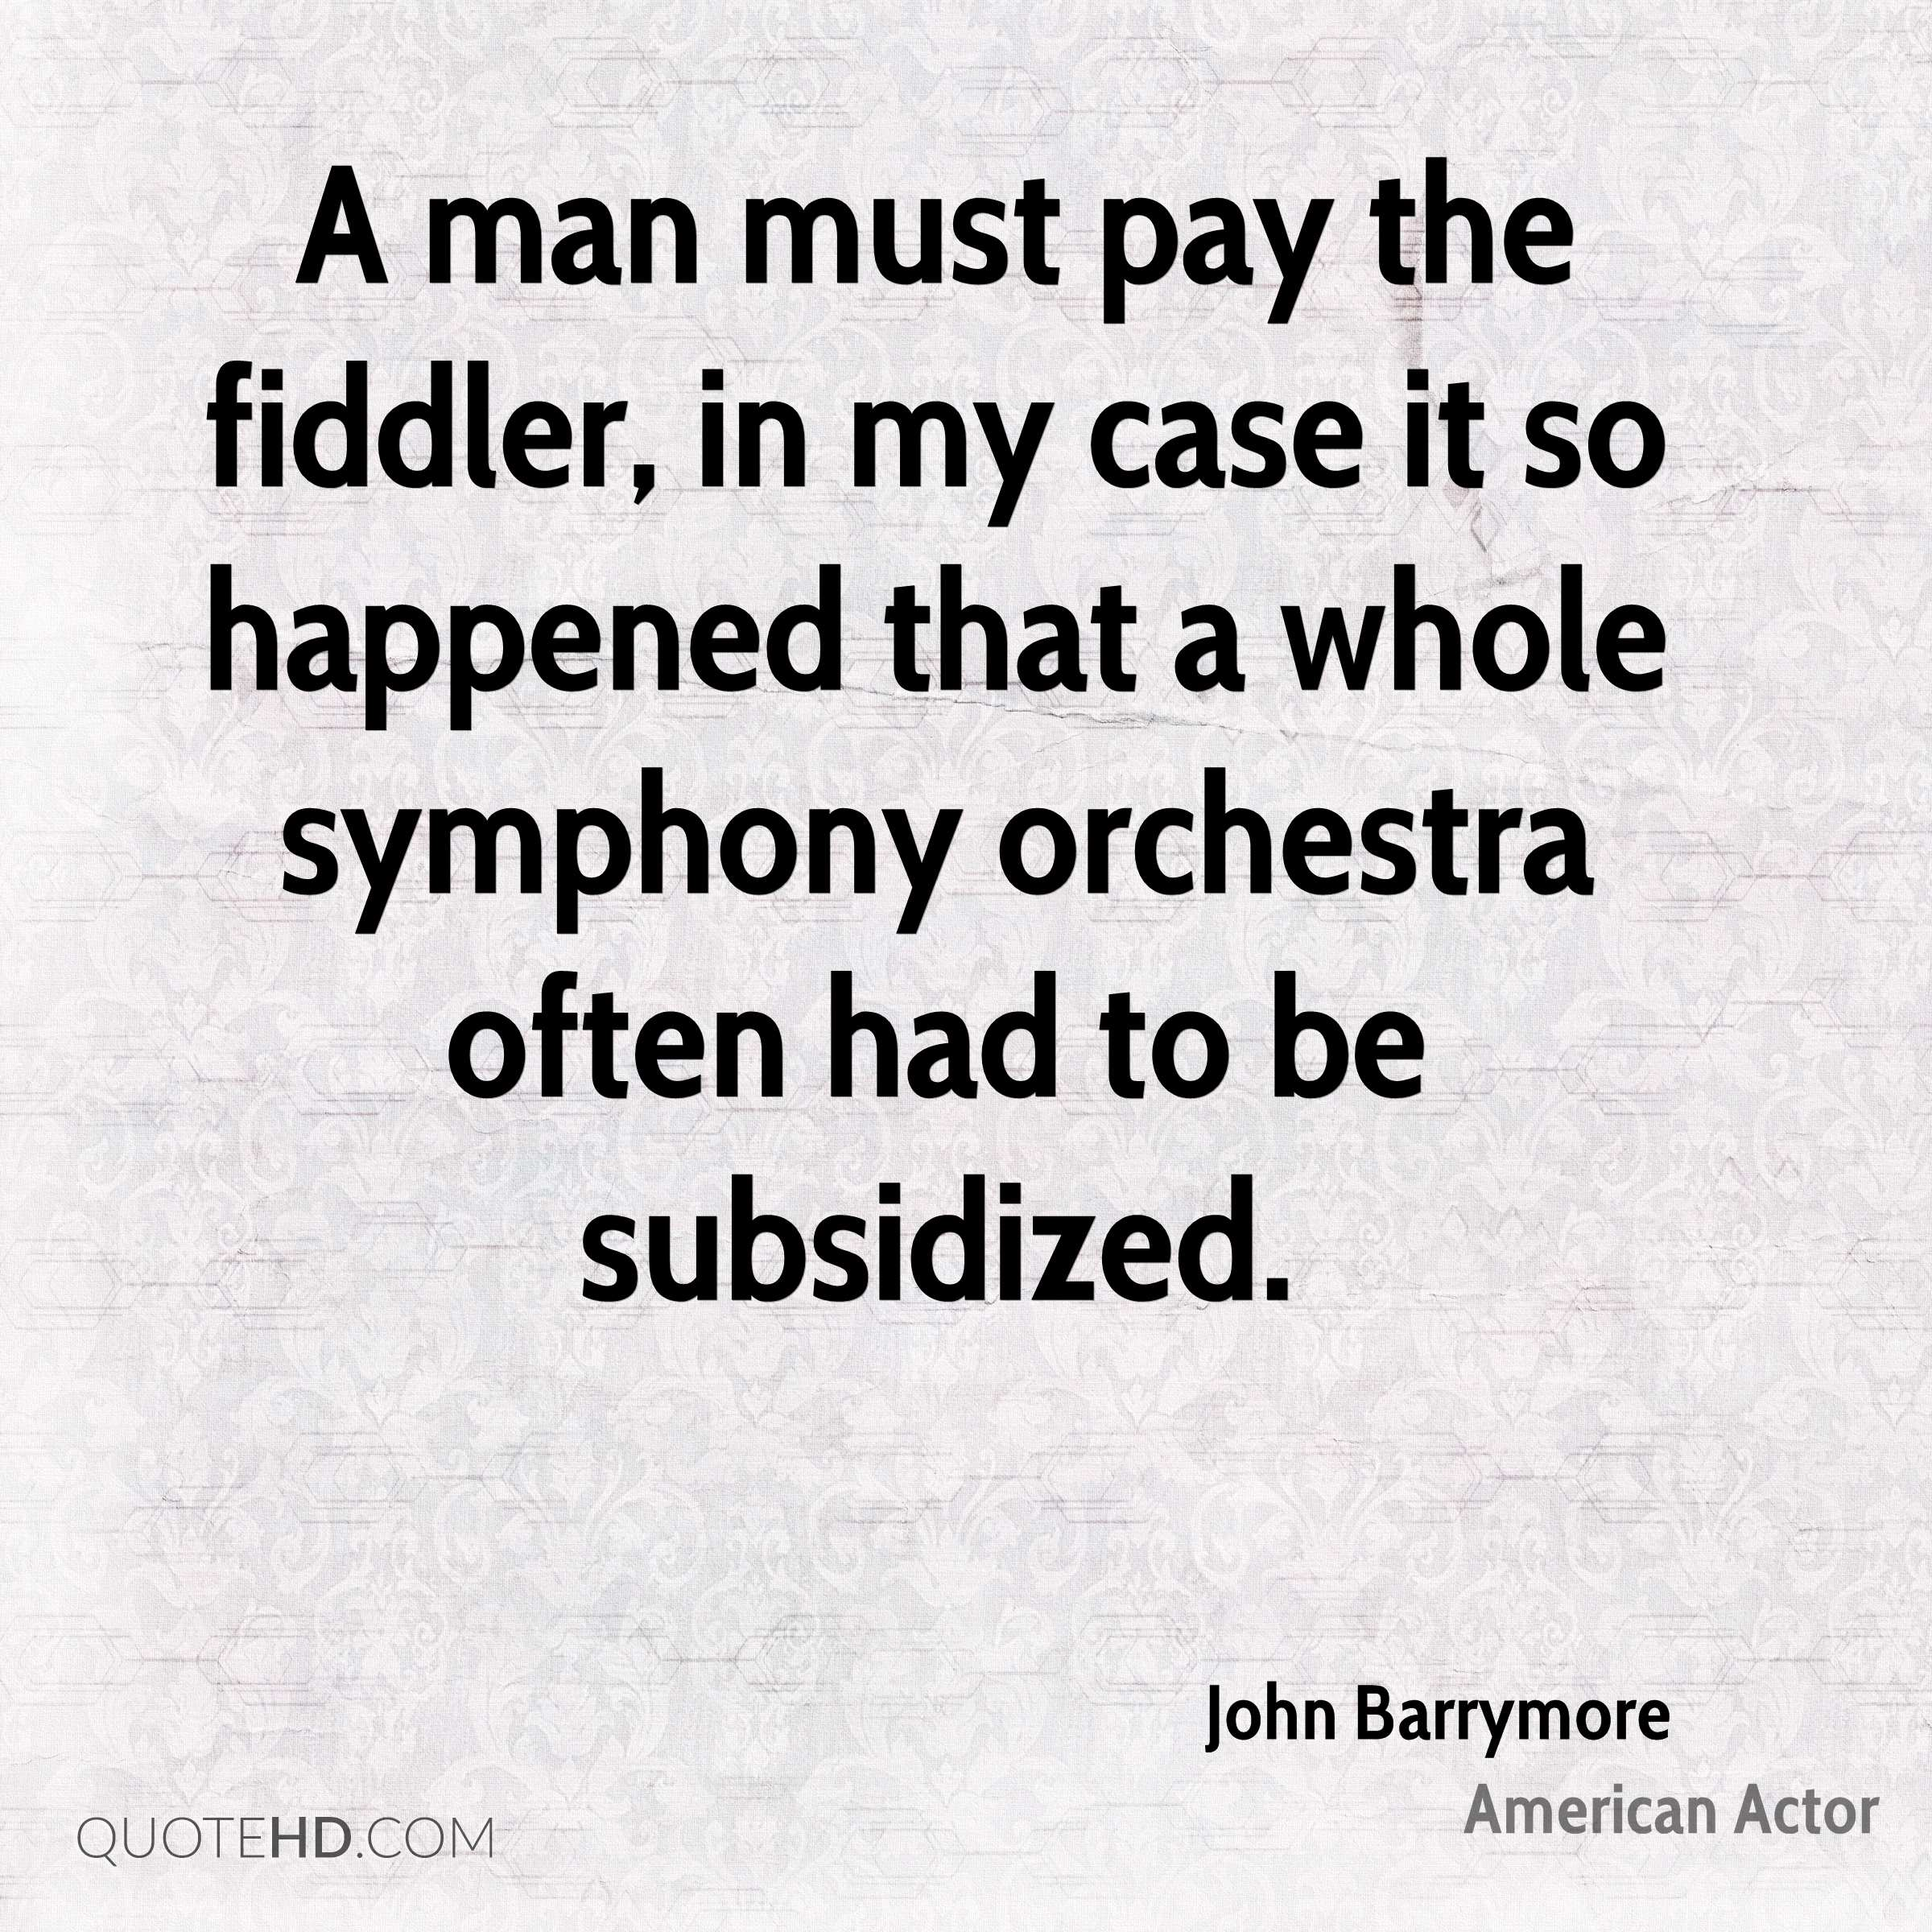 A man must pay the fiddler, in my case it so happened that a whole symphony orchestra often had to be subsidized.